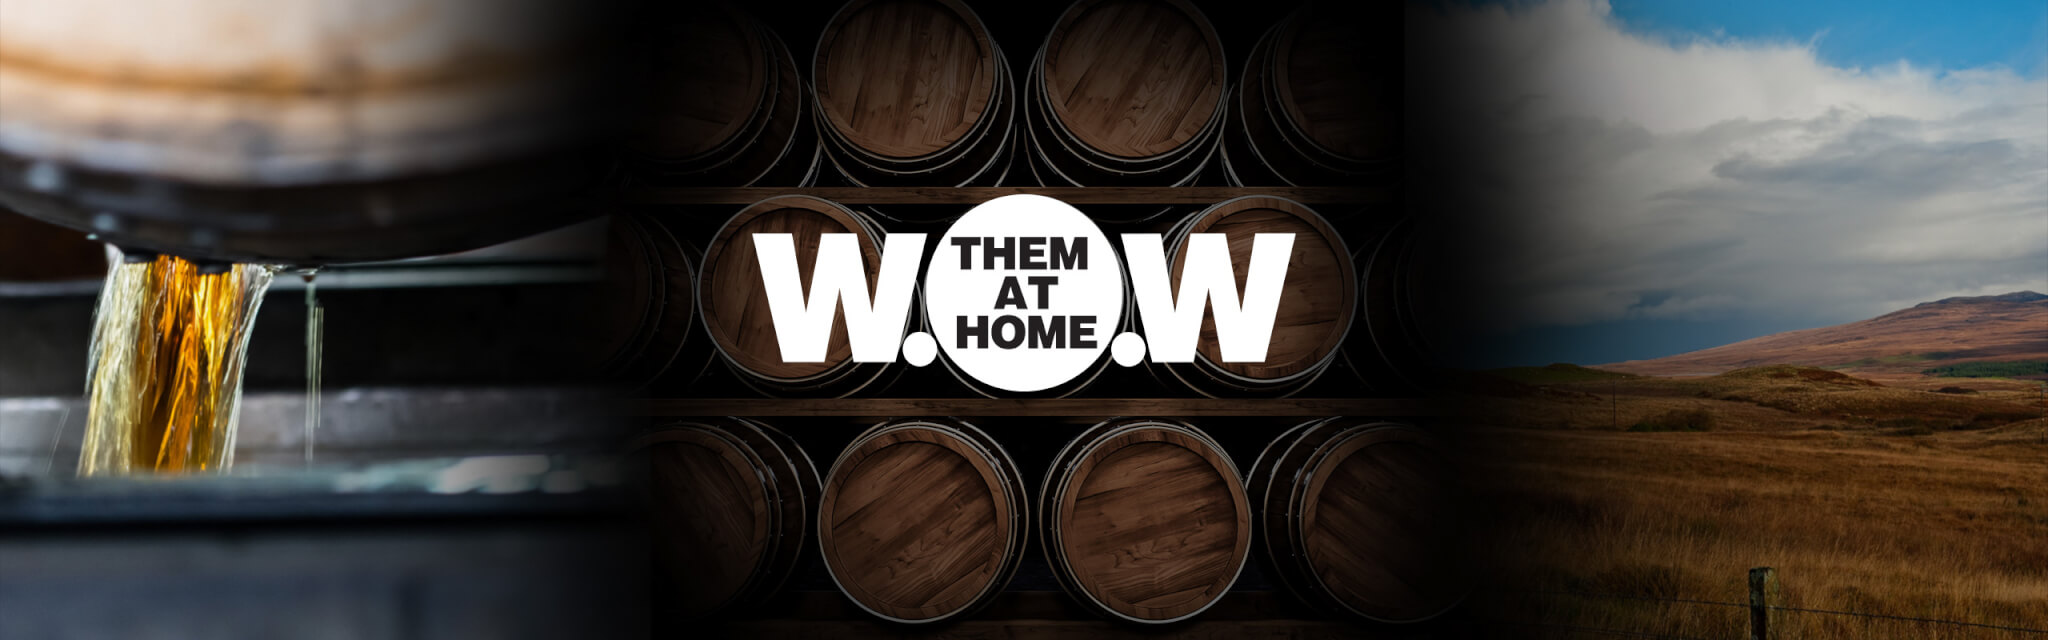 WOW THEM AT HOME - SCOTCH-TOBER